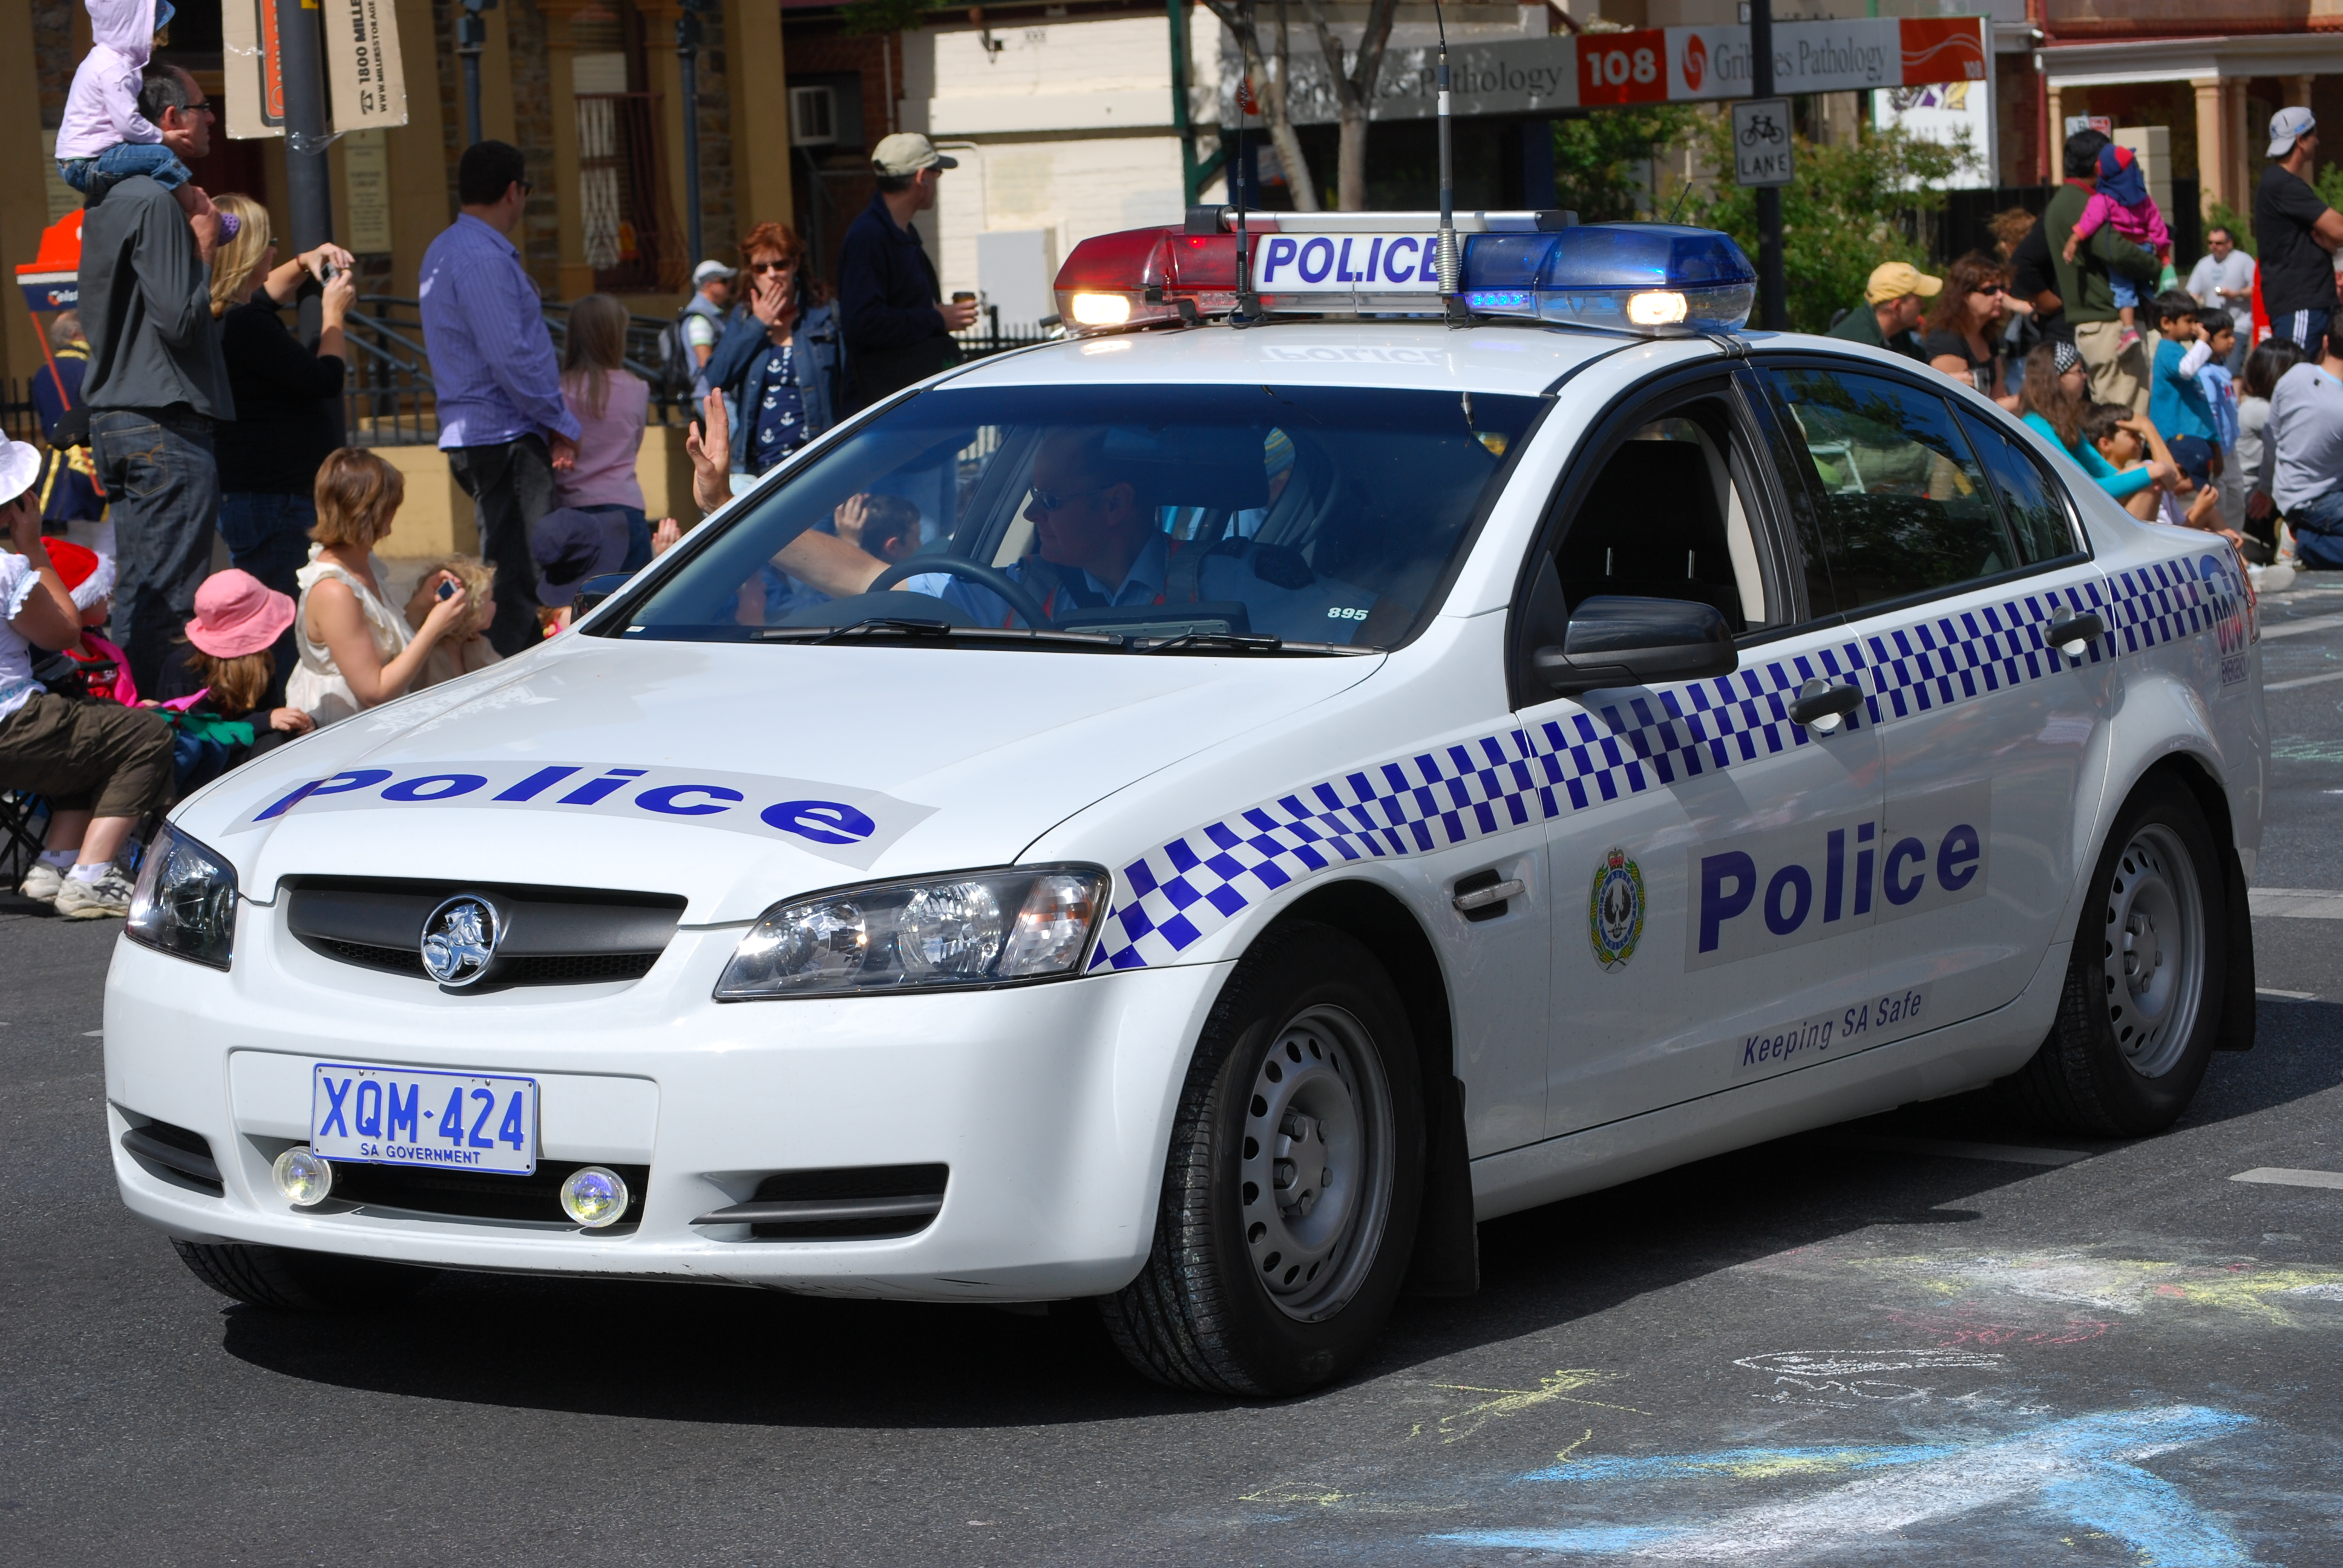 Sapol Do The Police Need To Respect Private Property